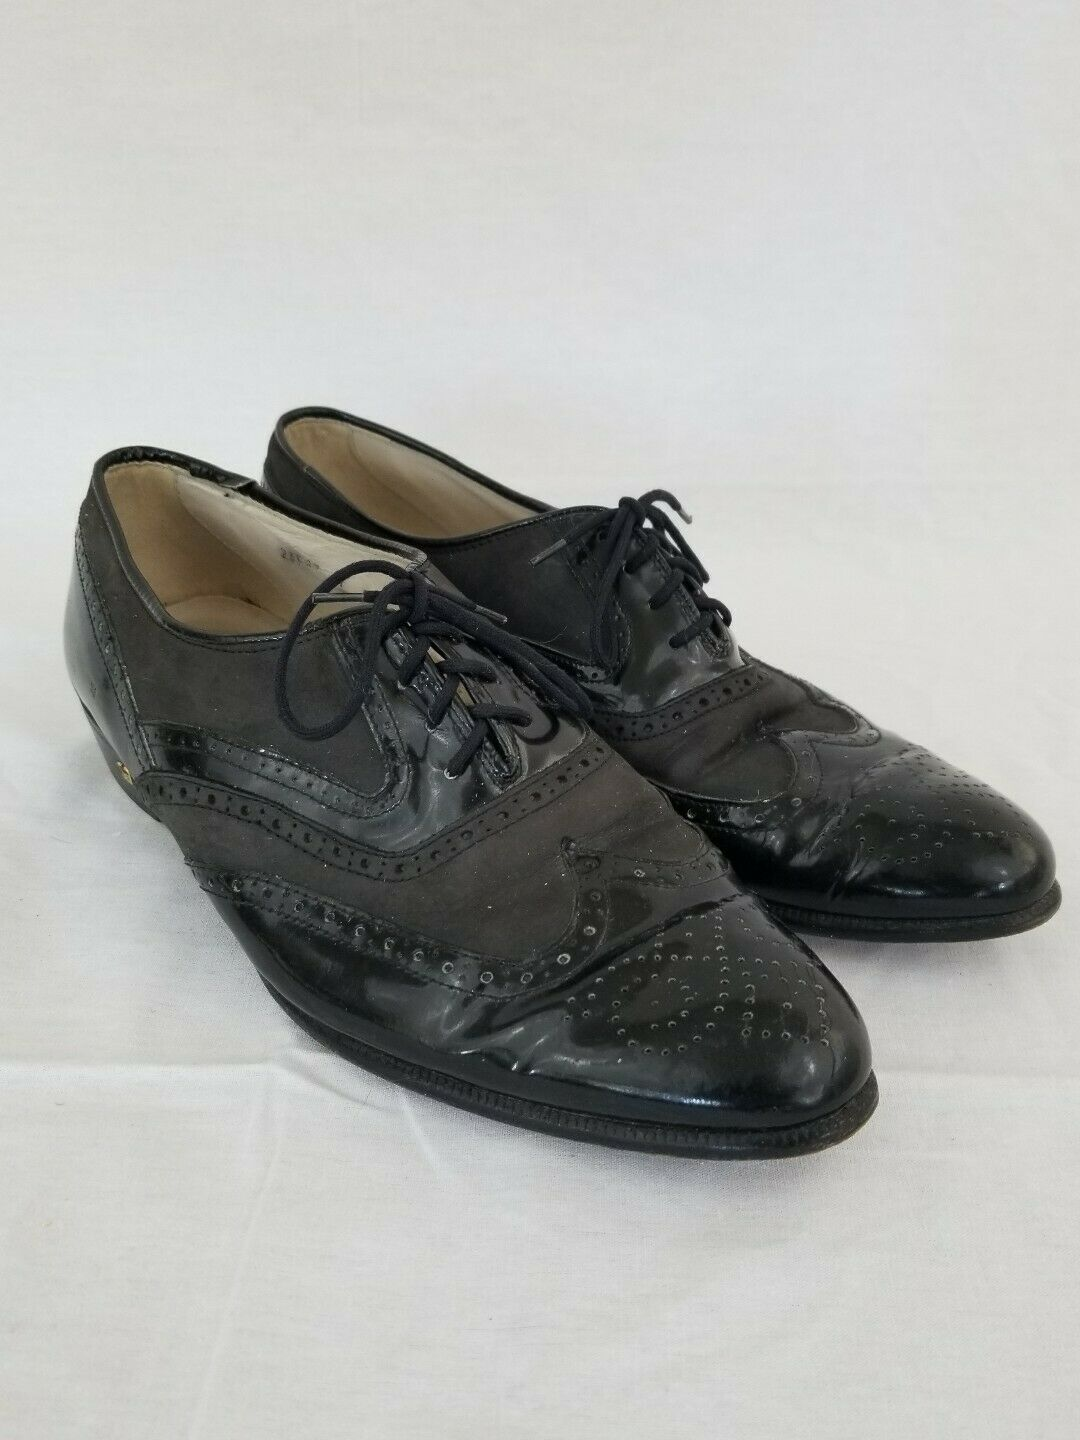 Stacy Adams Size 9 Wide Black Leather Wingtip Oxfords New Mens shoes